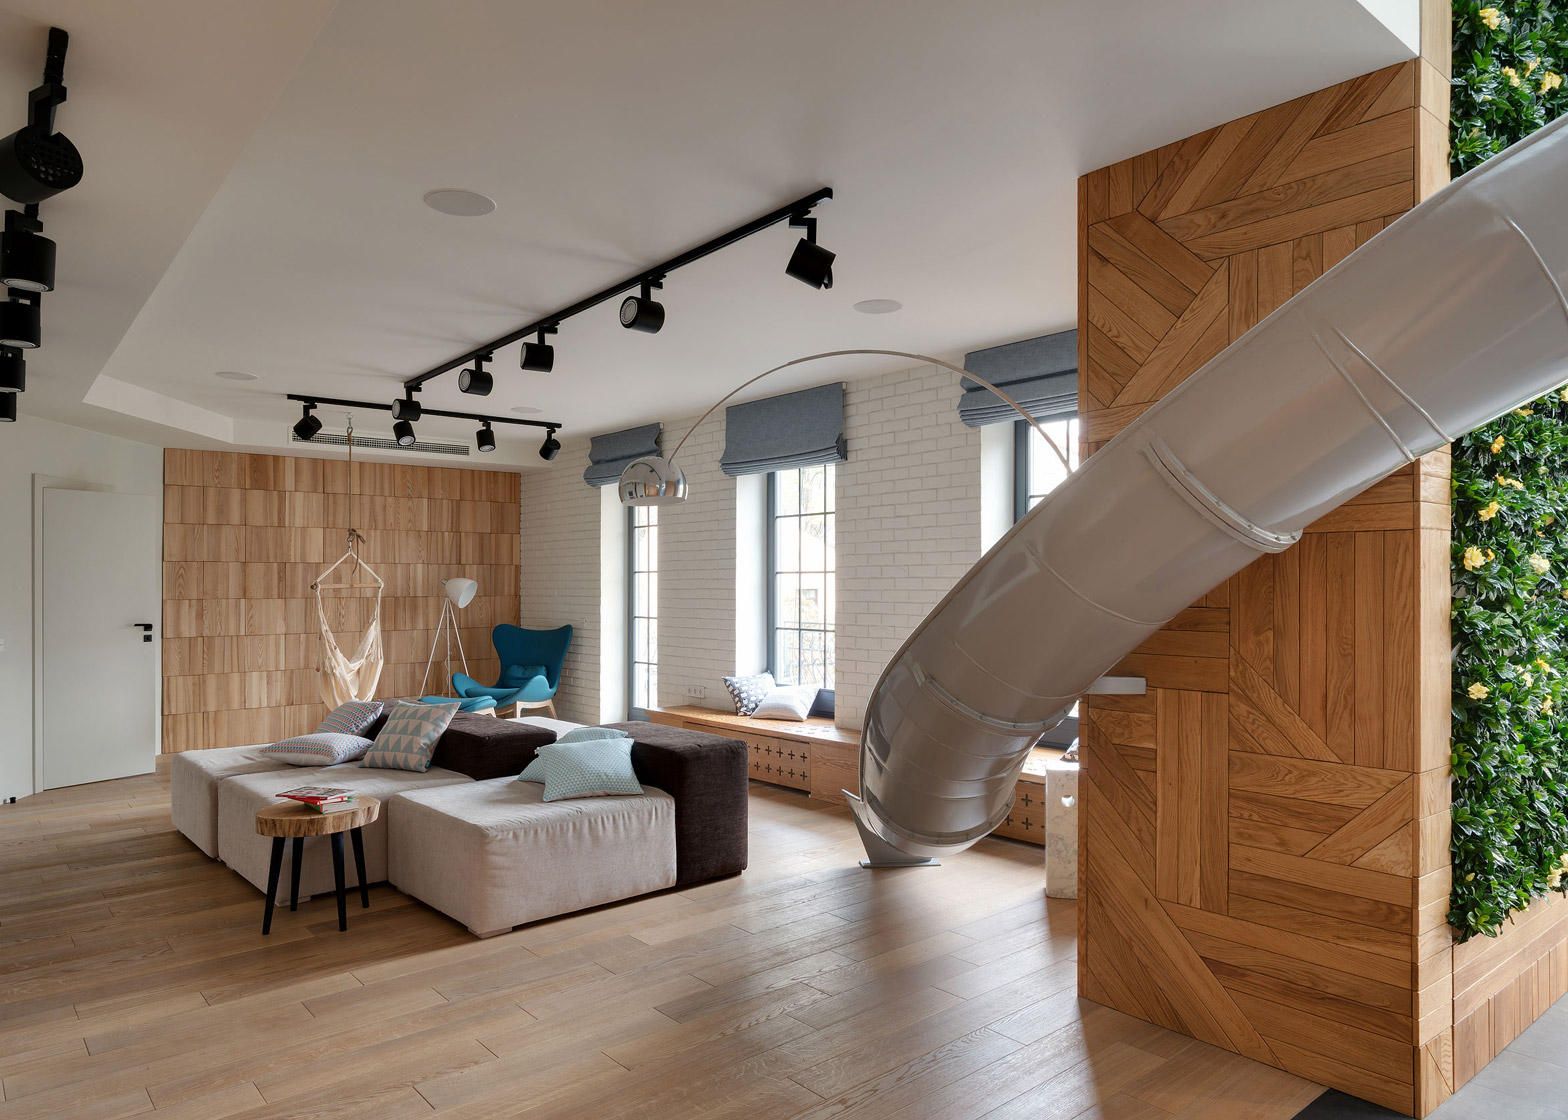 Apartment with a slide by KI Design Studio